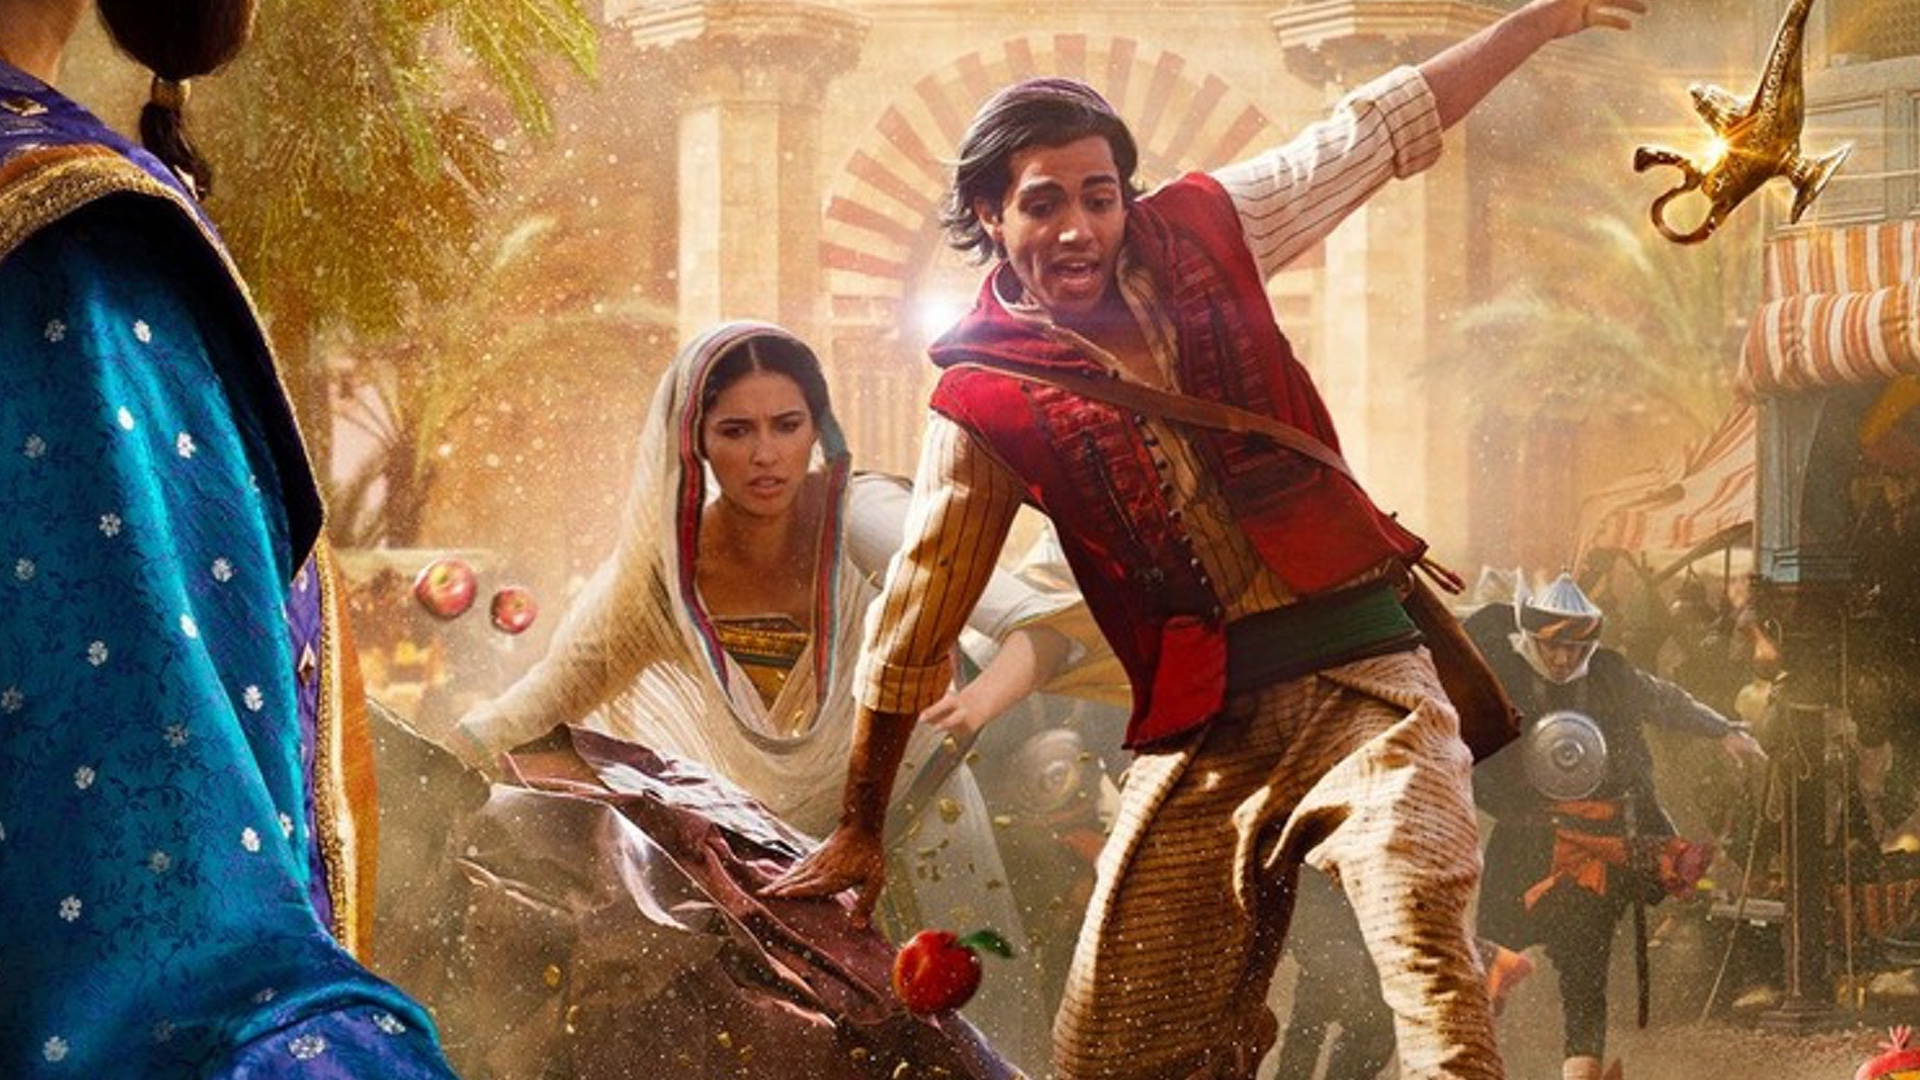 new-poster-and-clip-from-disneys-aladdin-plus-will-smith-singing-friend-like-me-on-the-tonight-show-social.jpg